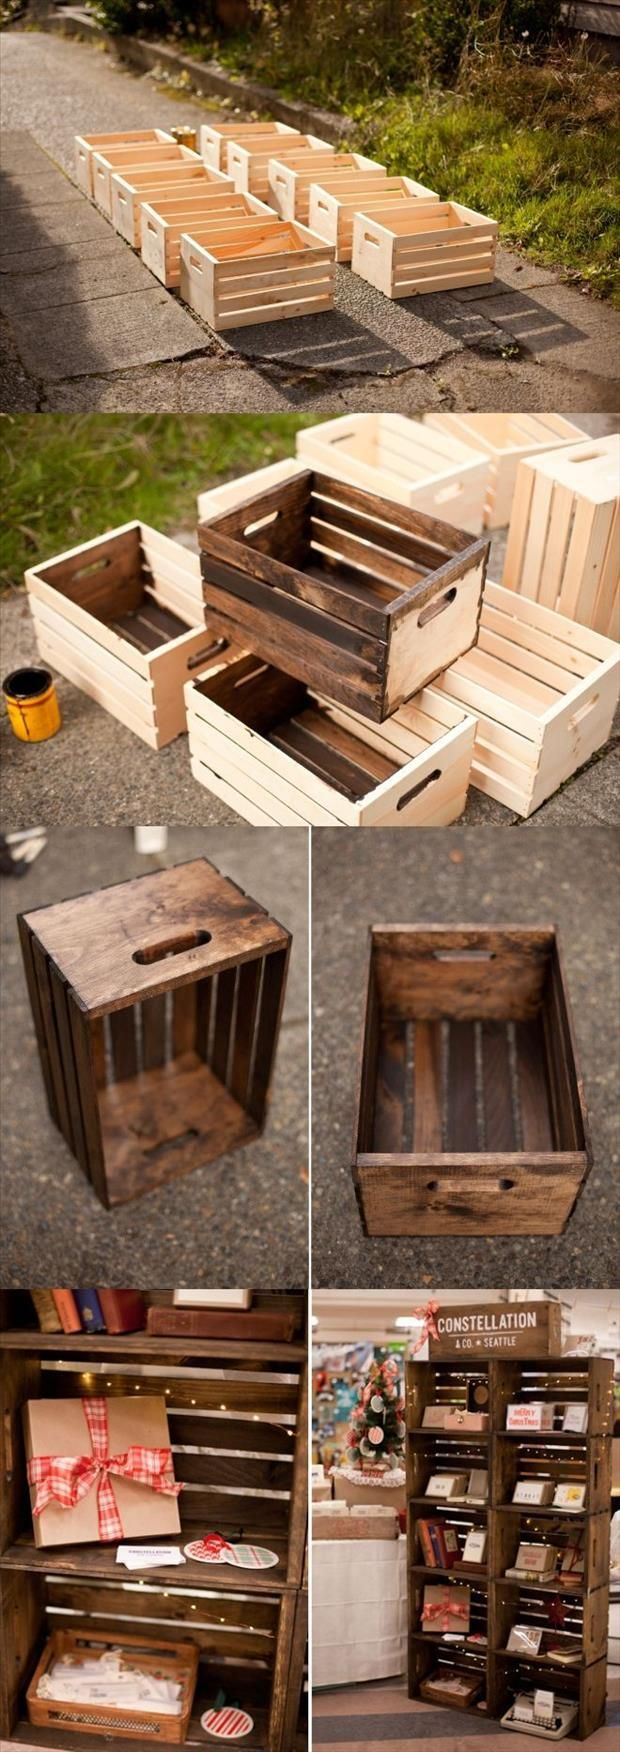 29 Ways To Decorate With Wooden Crates Usefuldiyprojects Decor Ideas 8